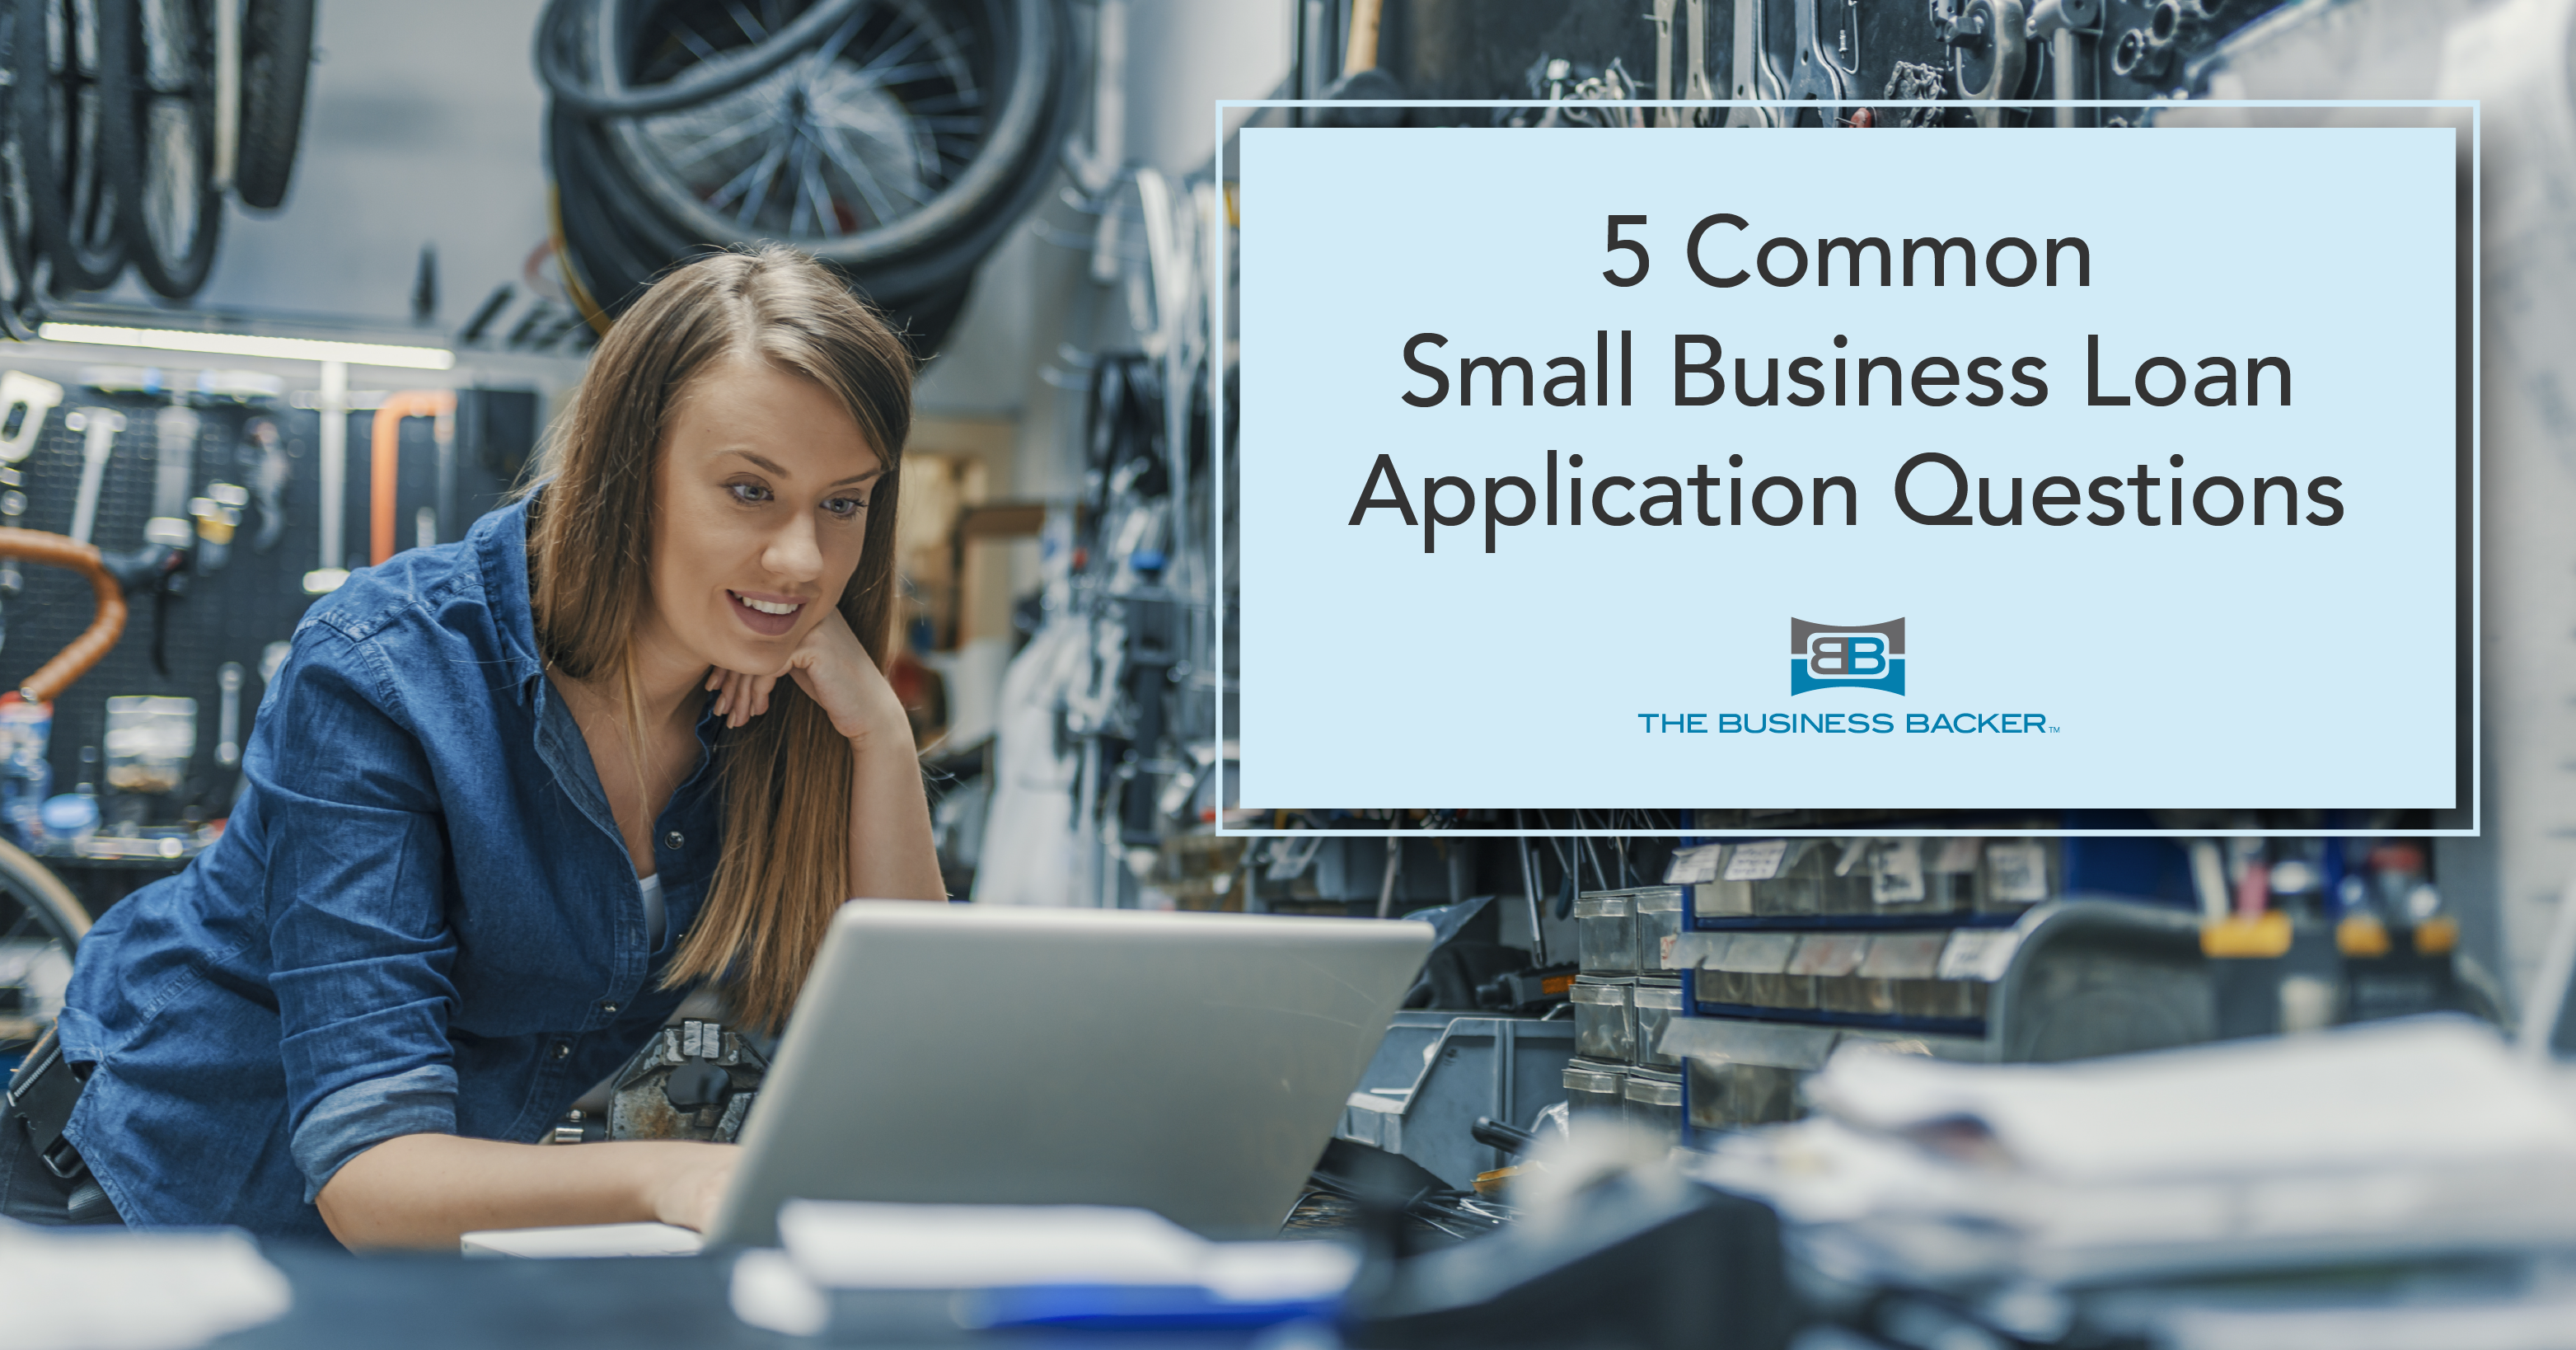 What Questions Are Asked on a Small Business Loan Application?